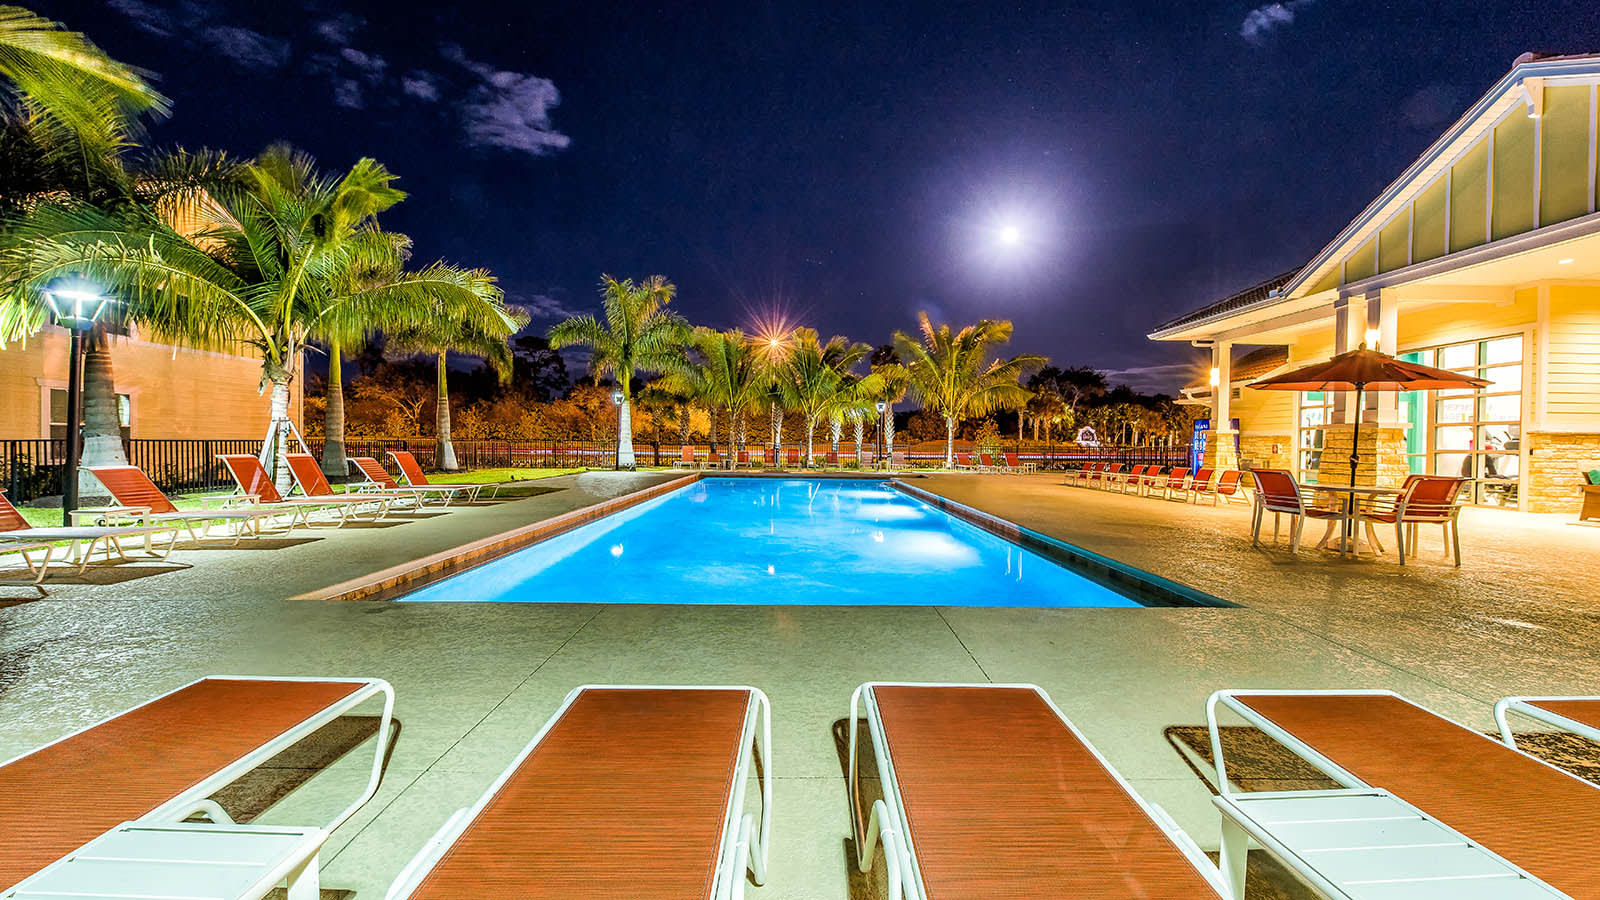 Swimming Pool At Night at Longitude 81 in Estero, FL